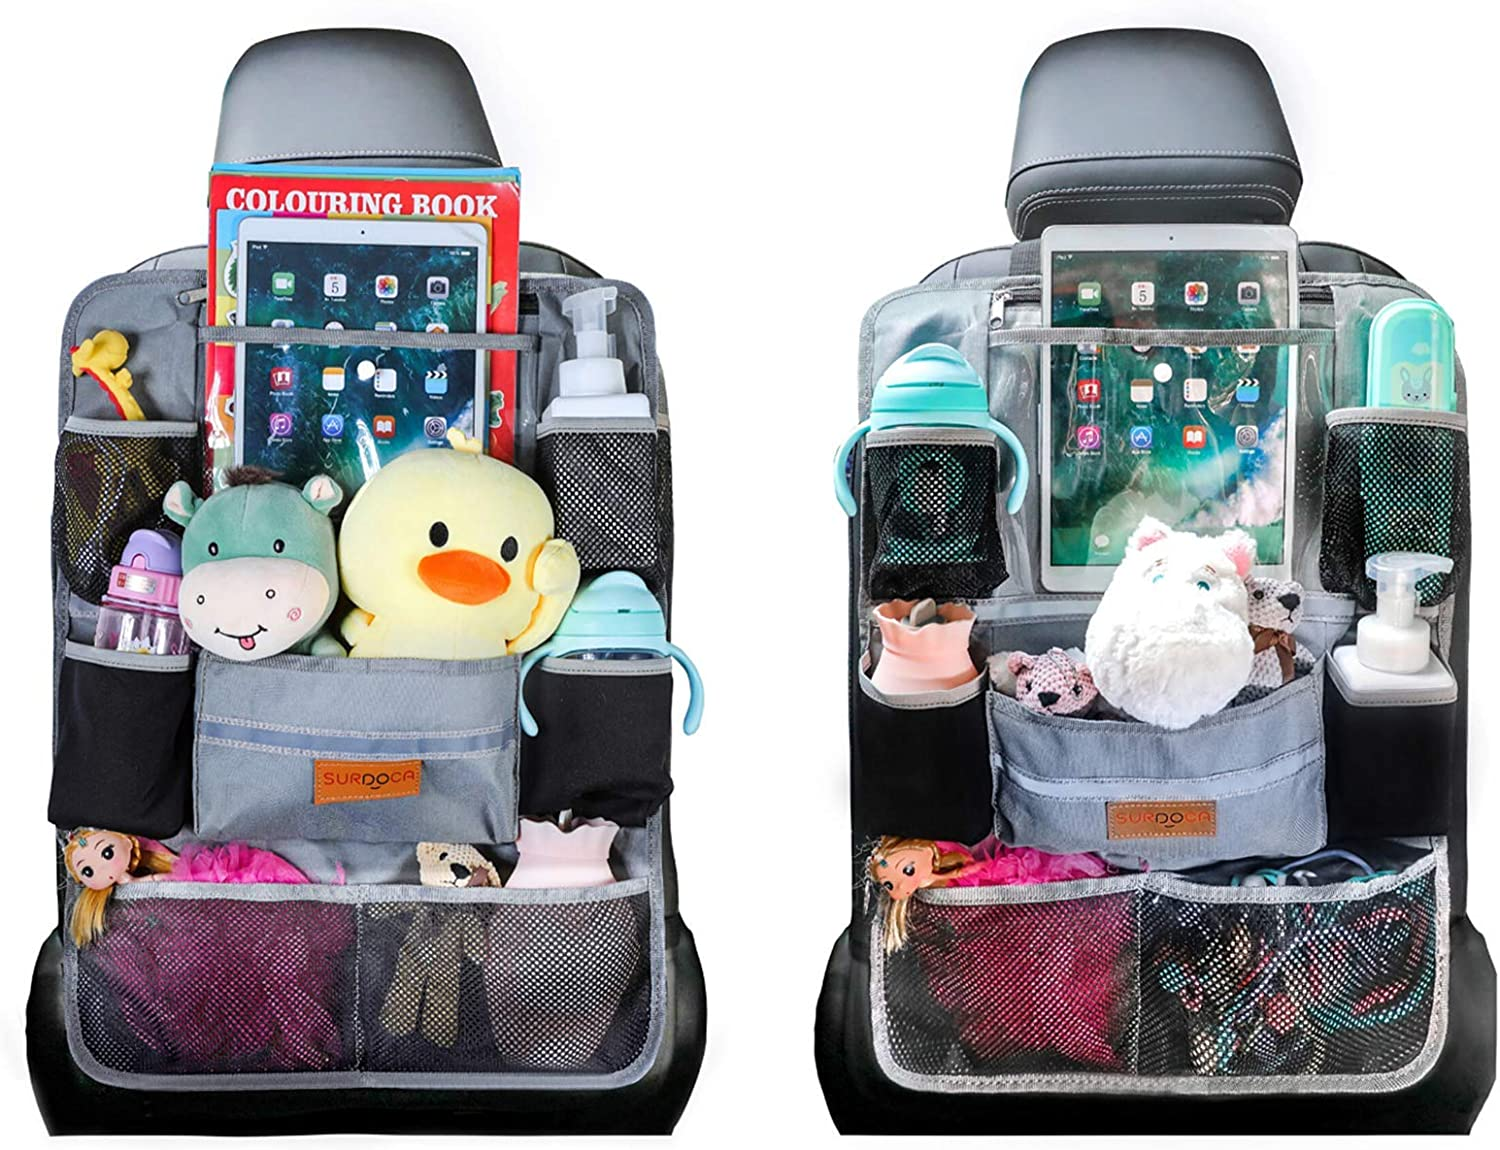 SURDOCA Car Organiser Car Seat Organiser 4th Generation Enhanced Car Organiser Back Seat for up to 10.5 iPad, 9 Pockets, Kids Toy Storage, Water Proof Back Seat Protector for Kids, Grey,2pcs